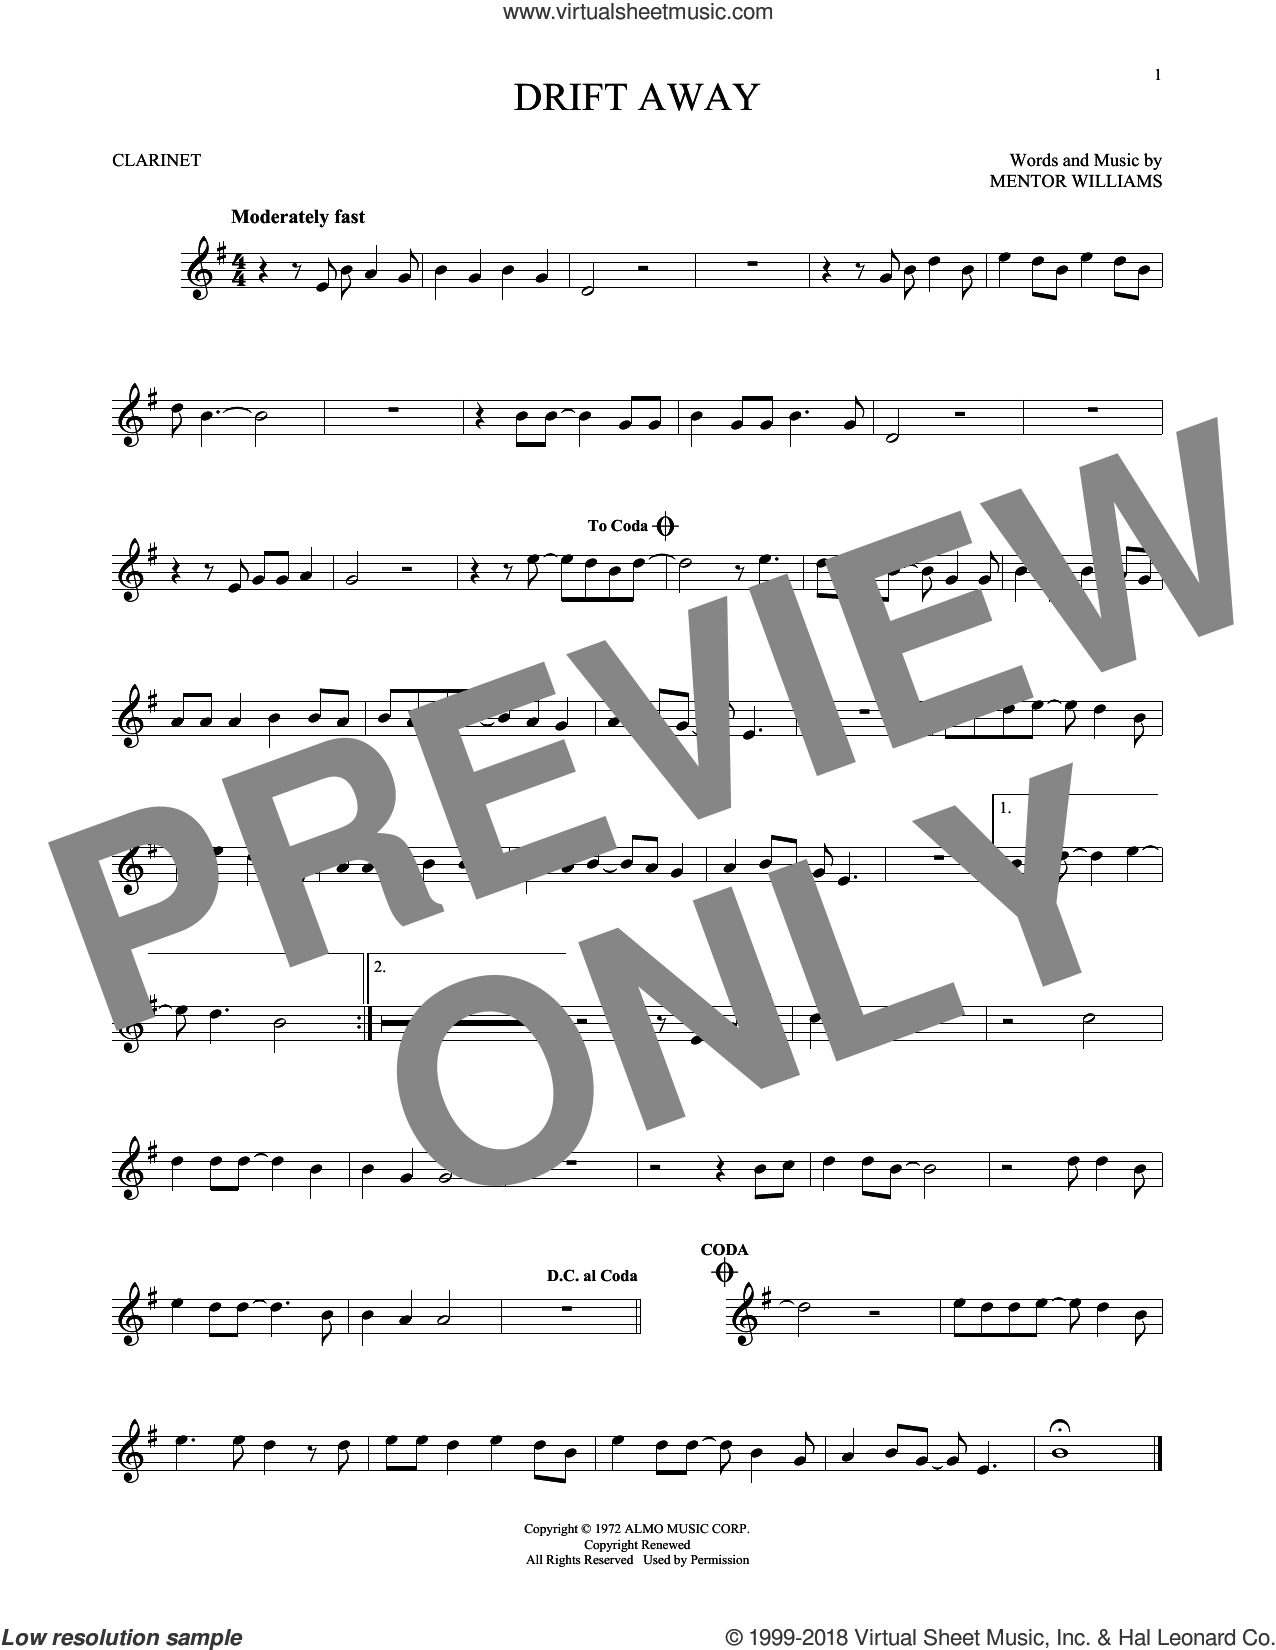 Drift Away sheet music for clarinet solo by Dobie Gray and Mentor Williams, intermediate skill level